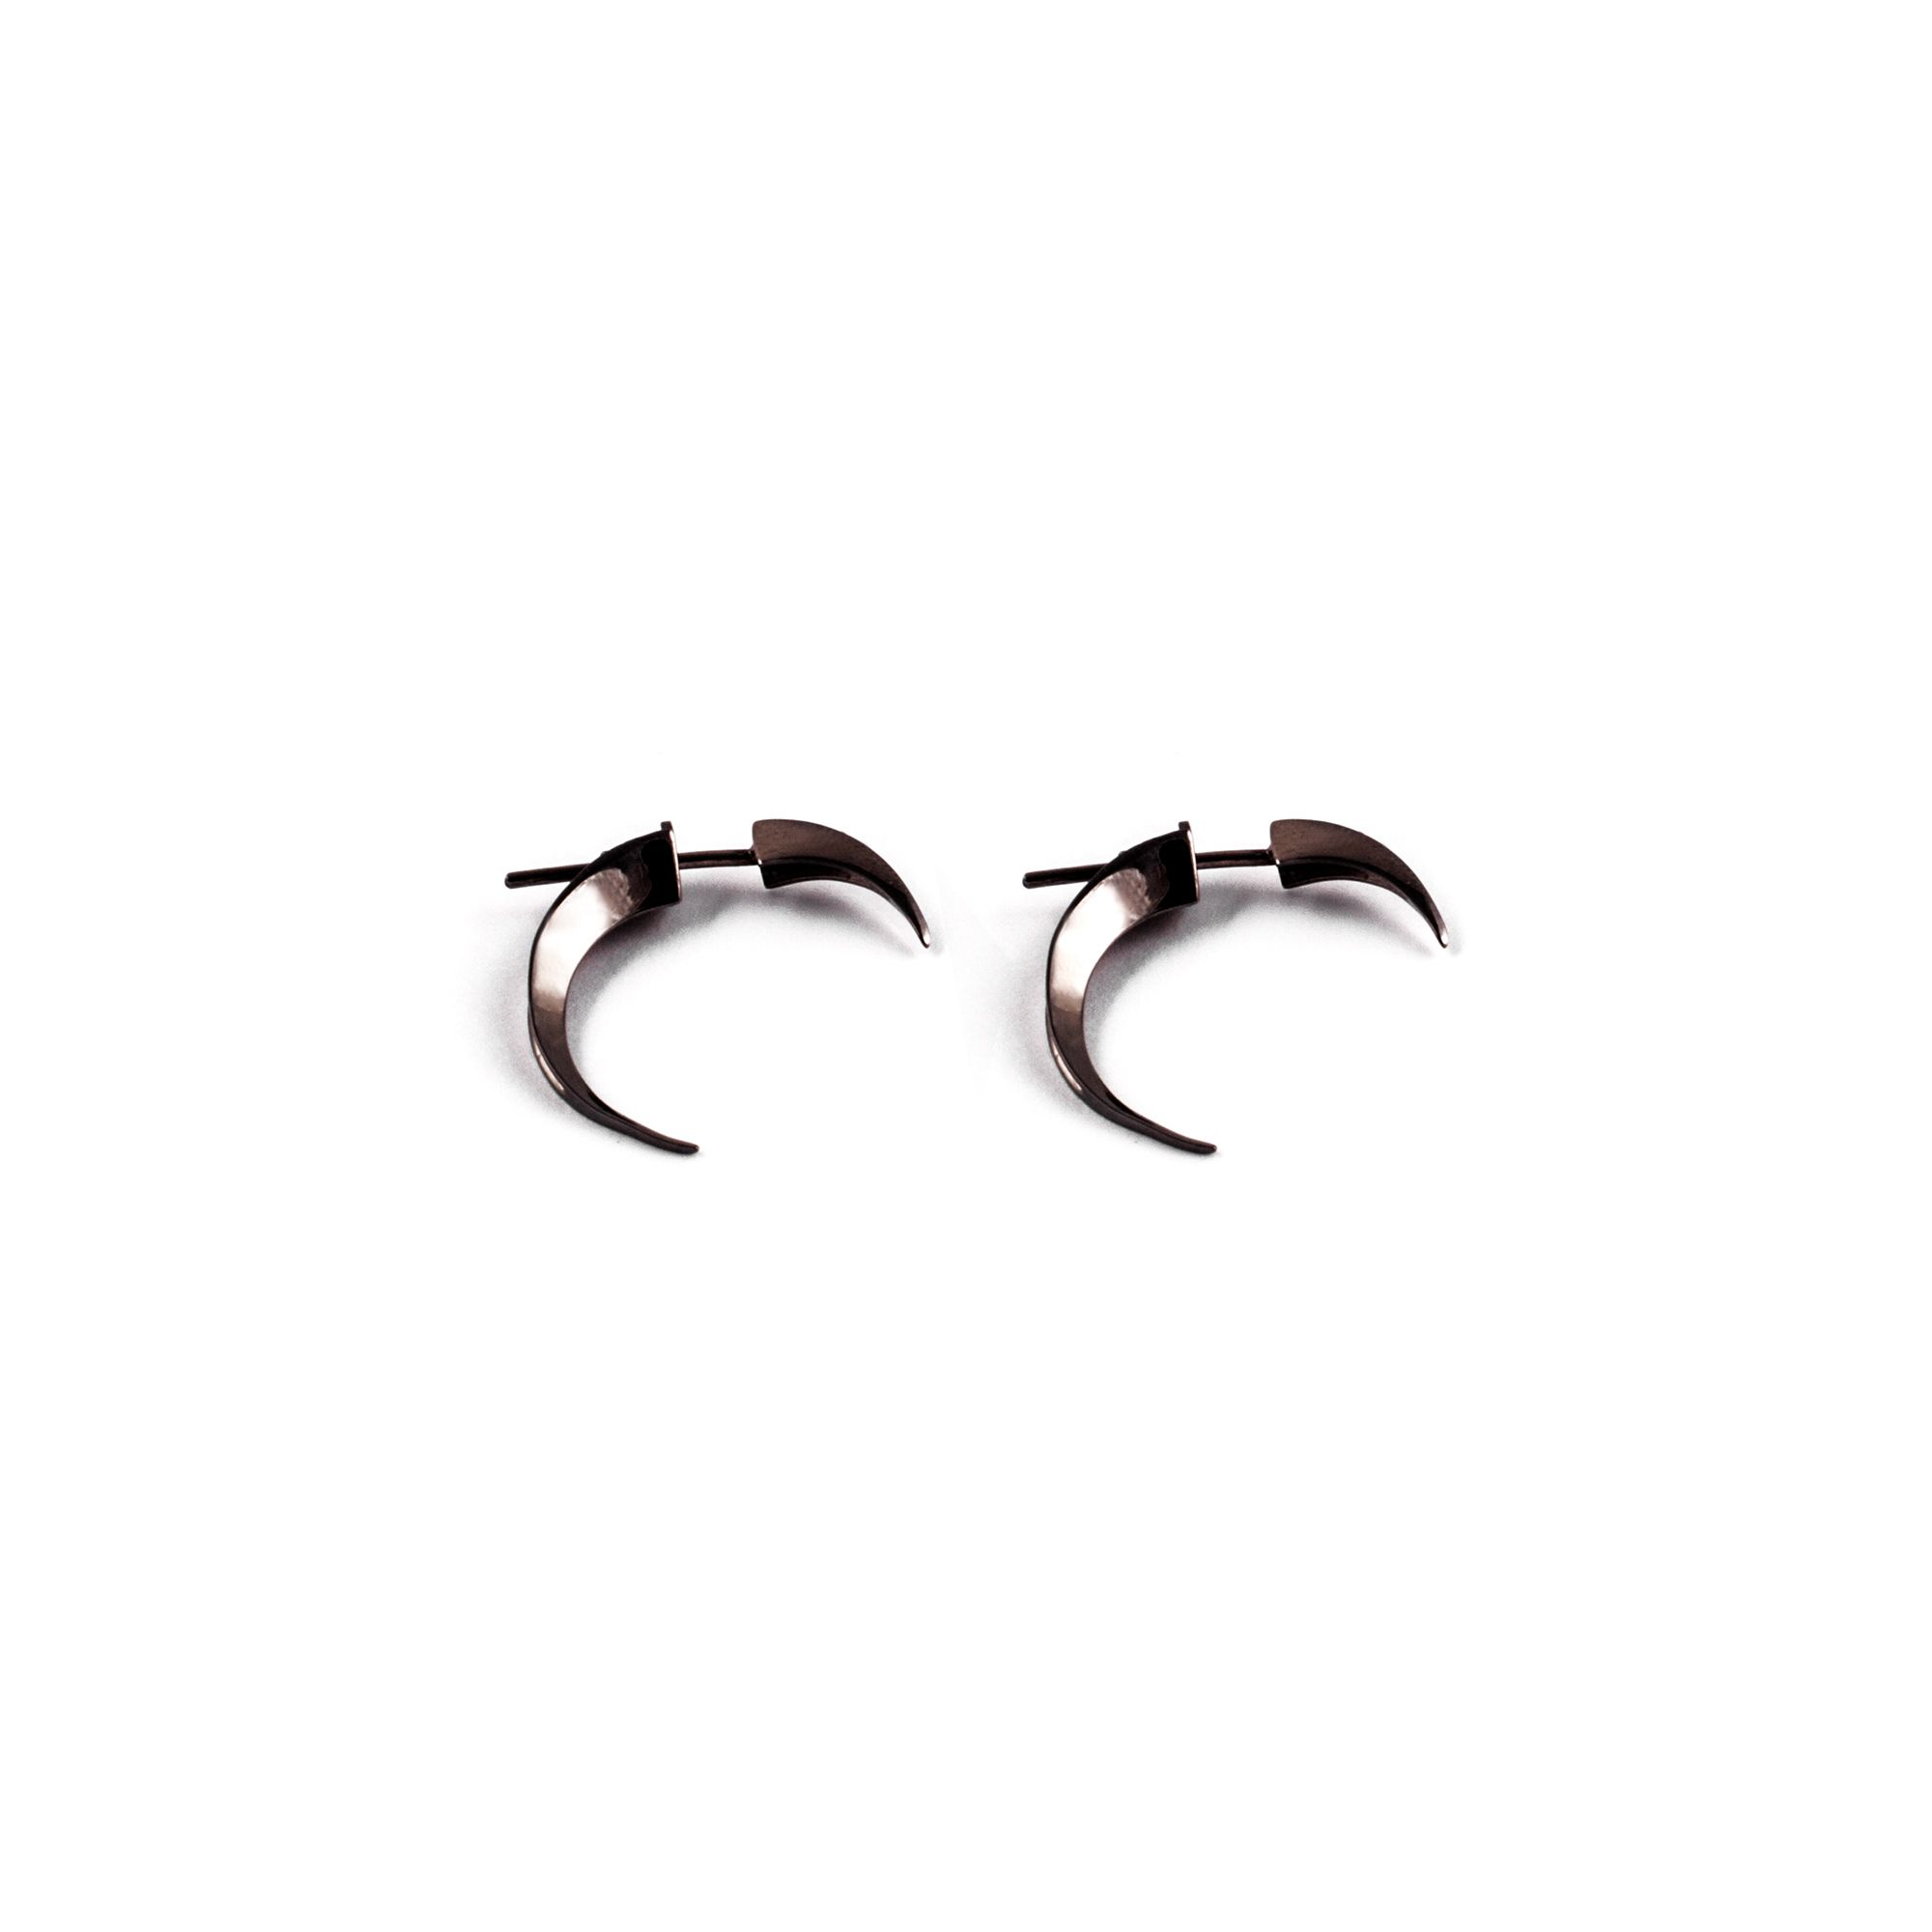 Front|back xs Hooks Earrings in black rhodium silver